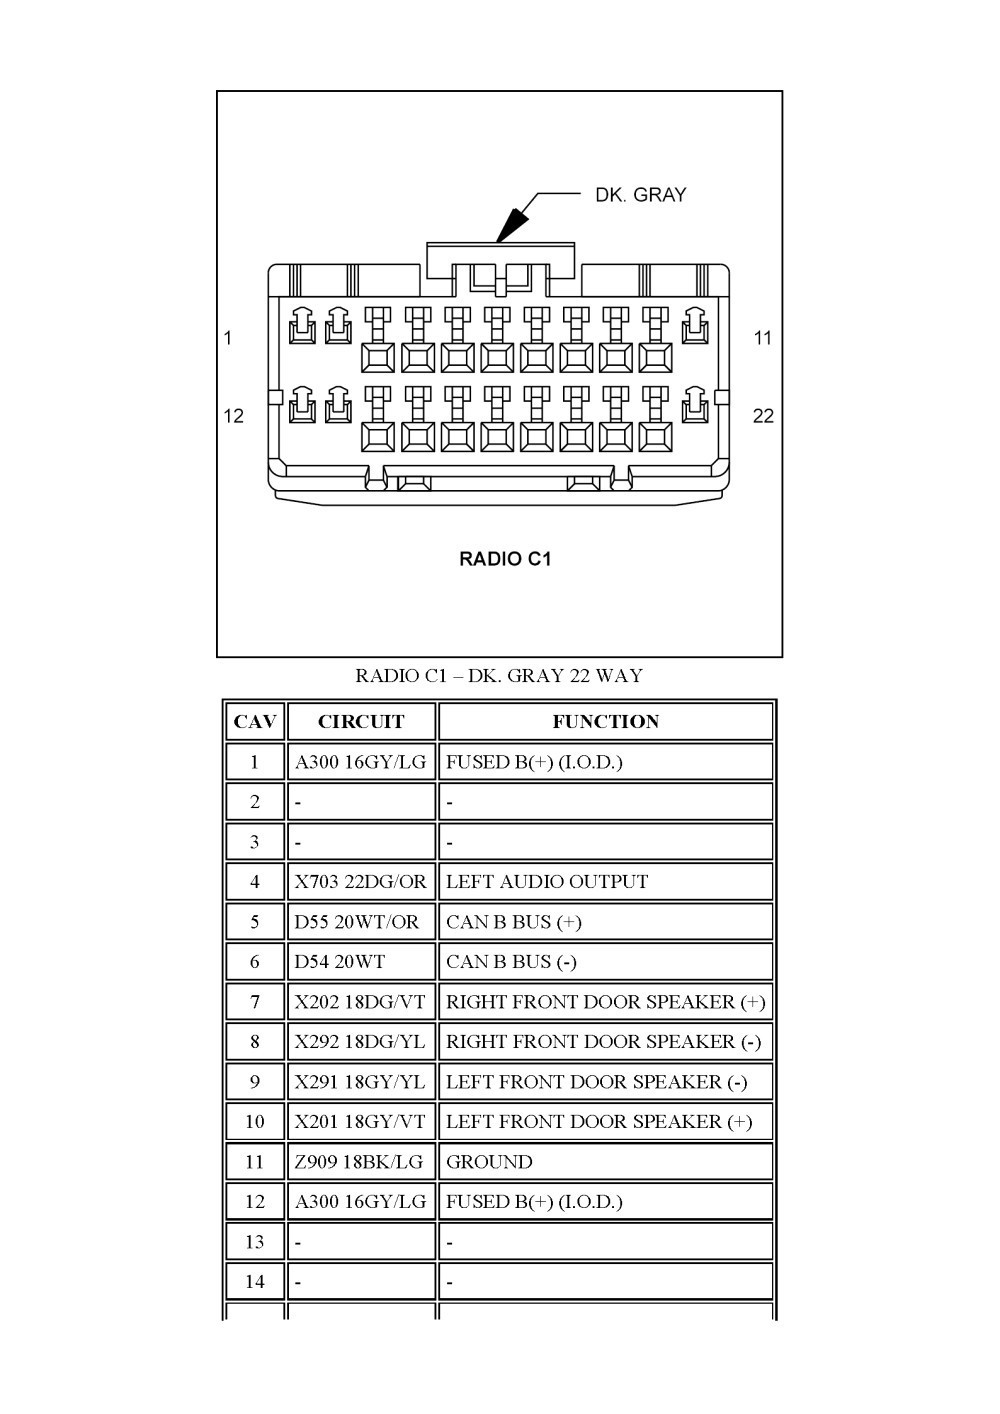 Wiring Diagram for 2014 Dodge Grand Caravan Radio | Wiring ...